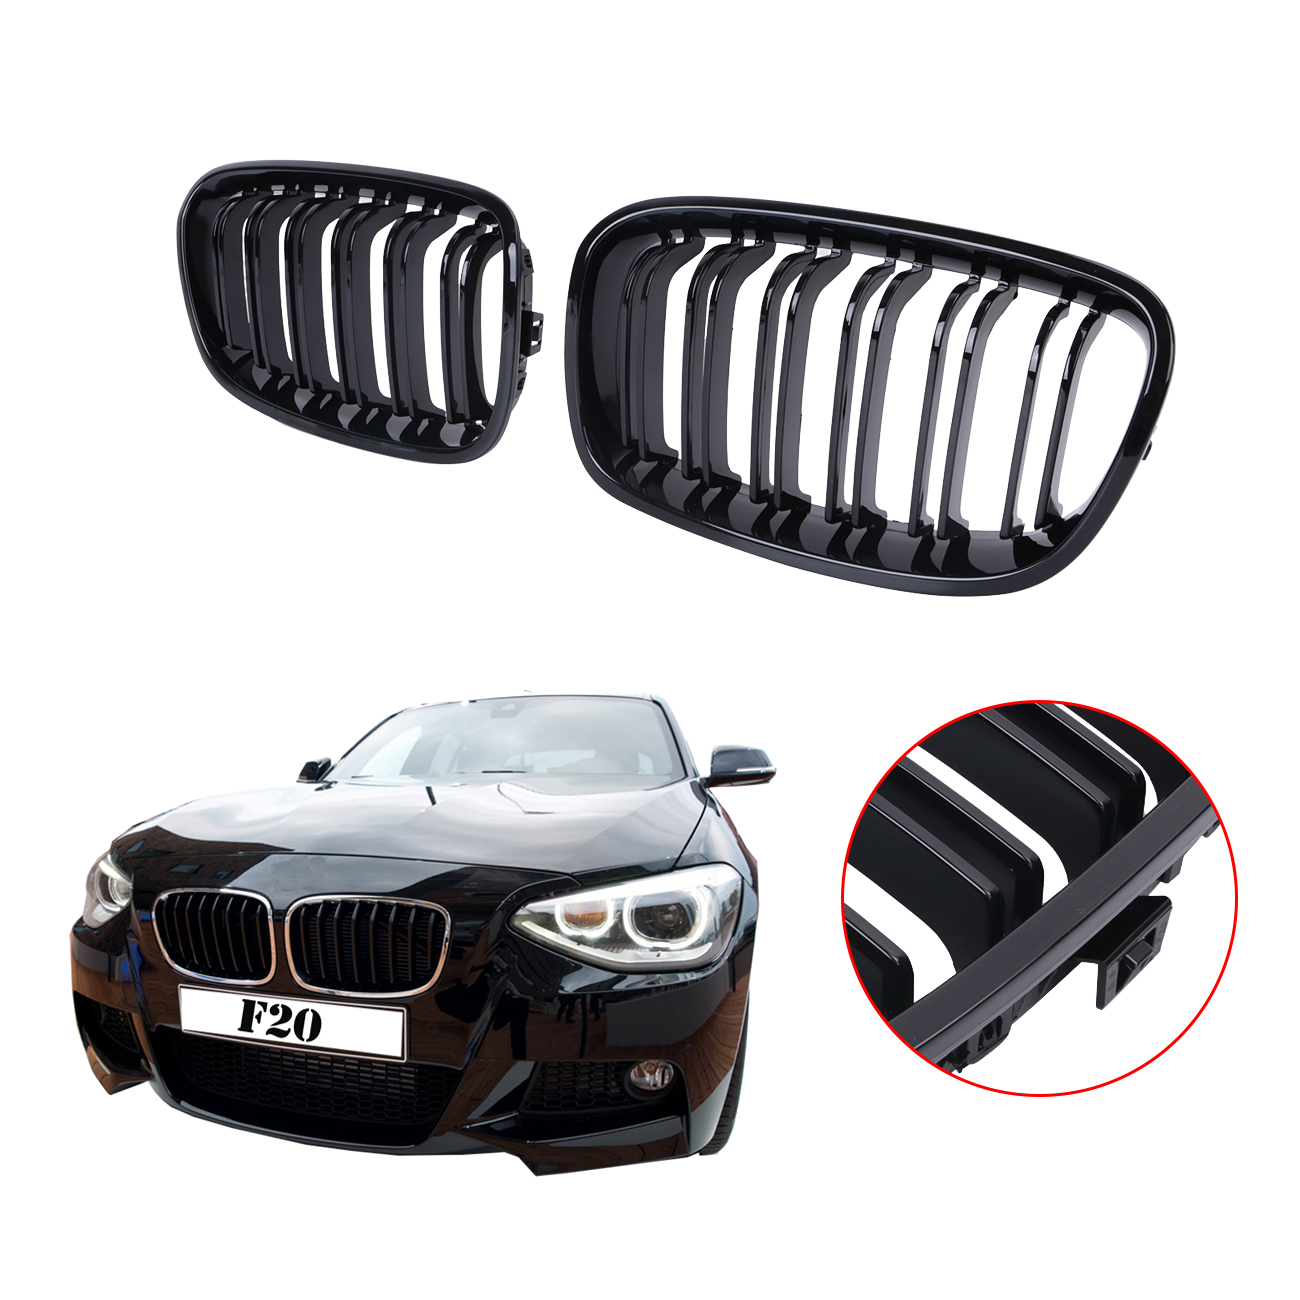 Double Slat Front Grille Kidney Grills For BMW LCI F20 F21 M Sport 118i 120i 125i 2010 2011 2012 2013 2014 Glossy Black #P456 2016 new a pair front grilles left and right double line grille gloss black front grills for bmw 3 series e46 2002 2004 4 door